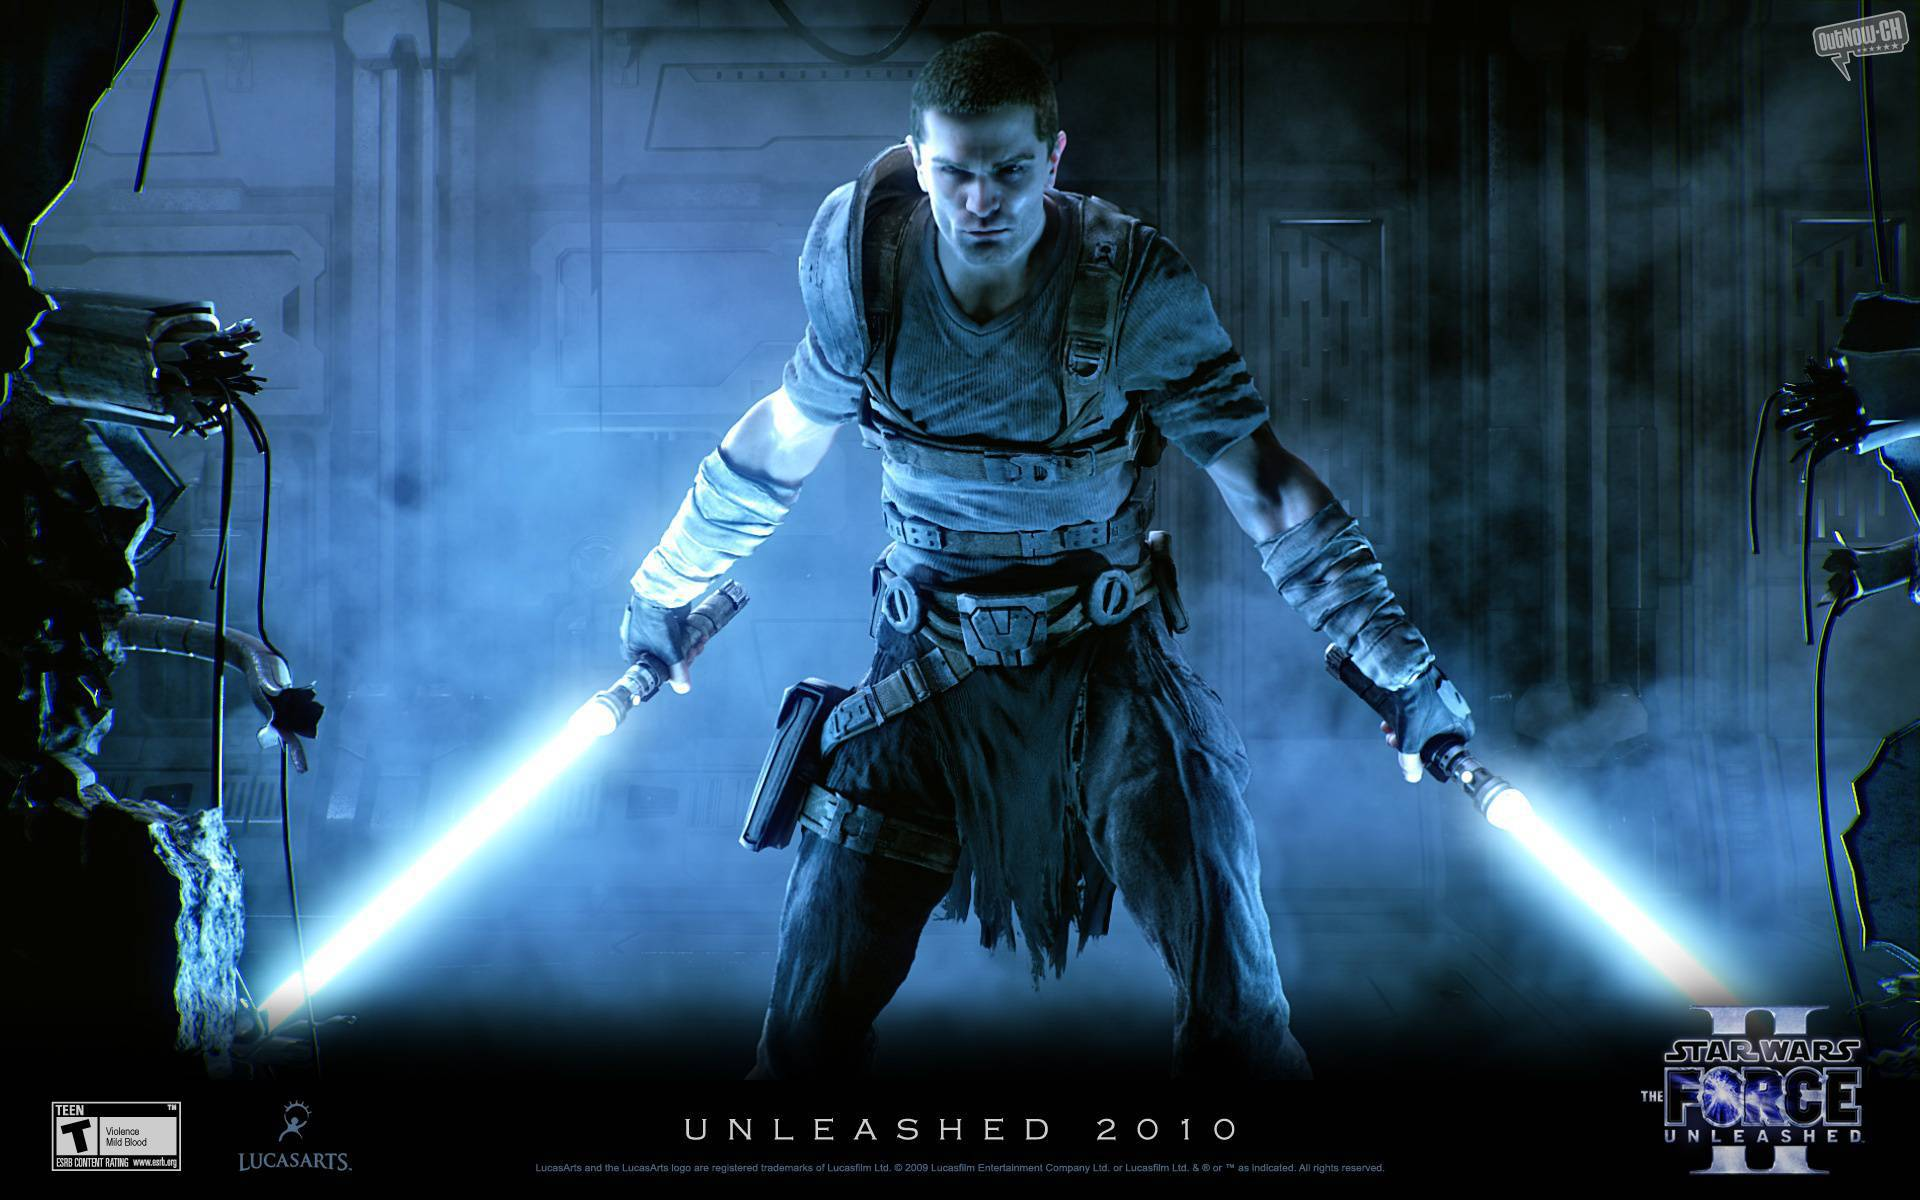 IStar Wars The force unleashed 2om